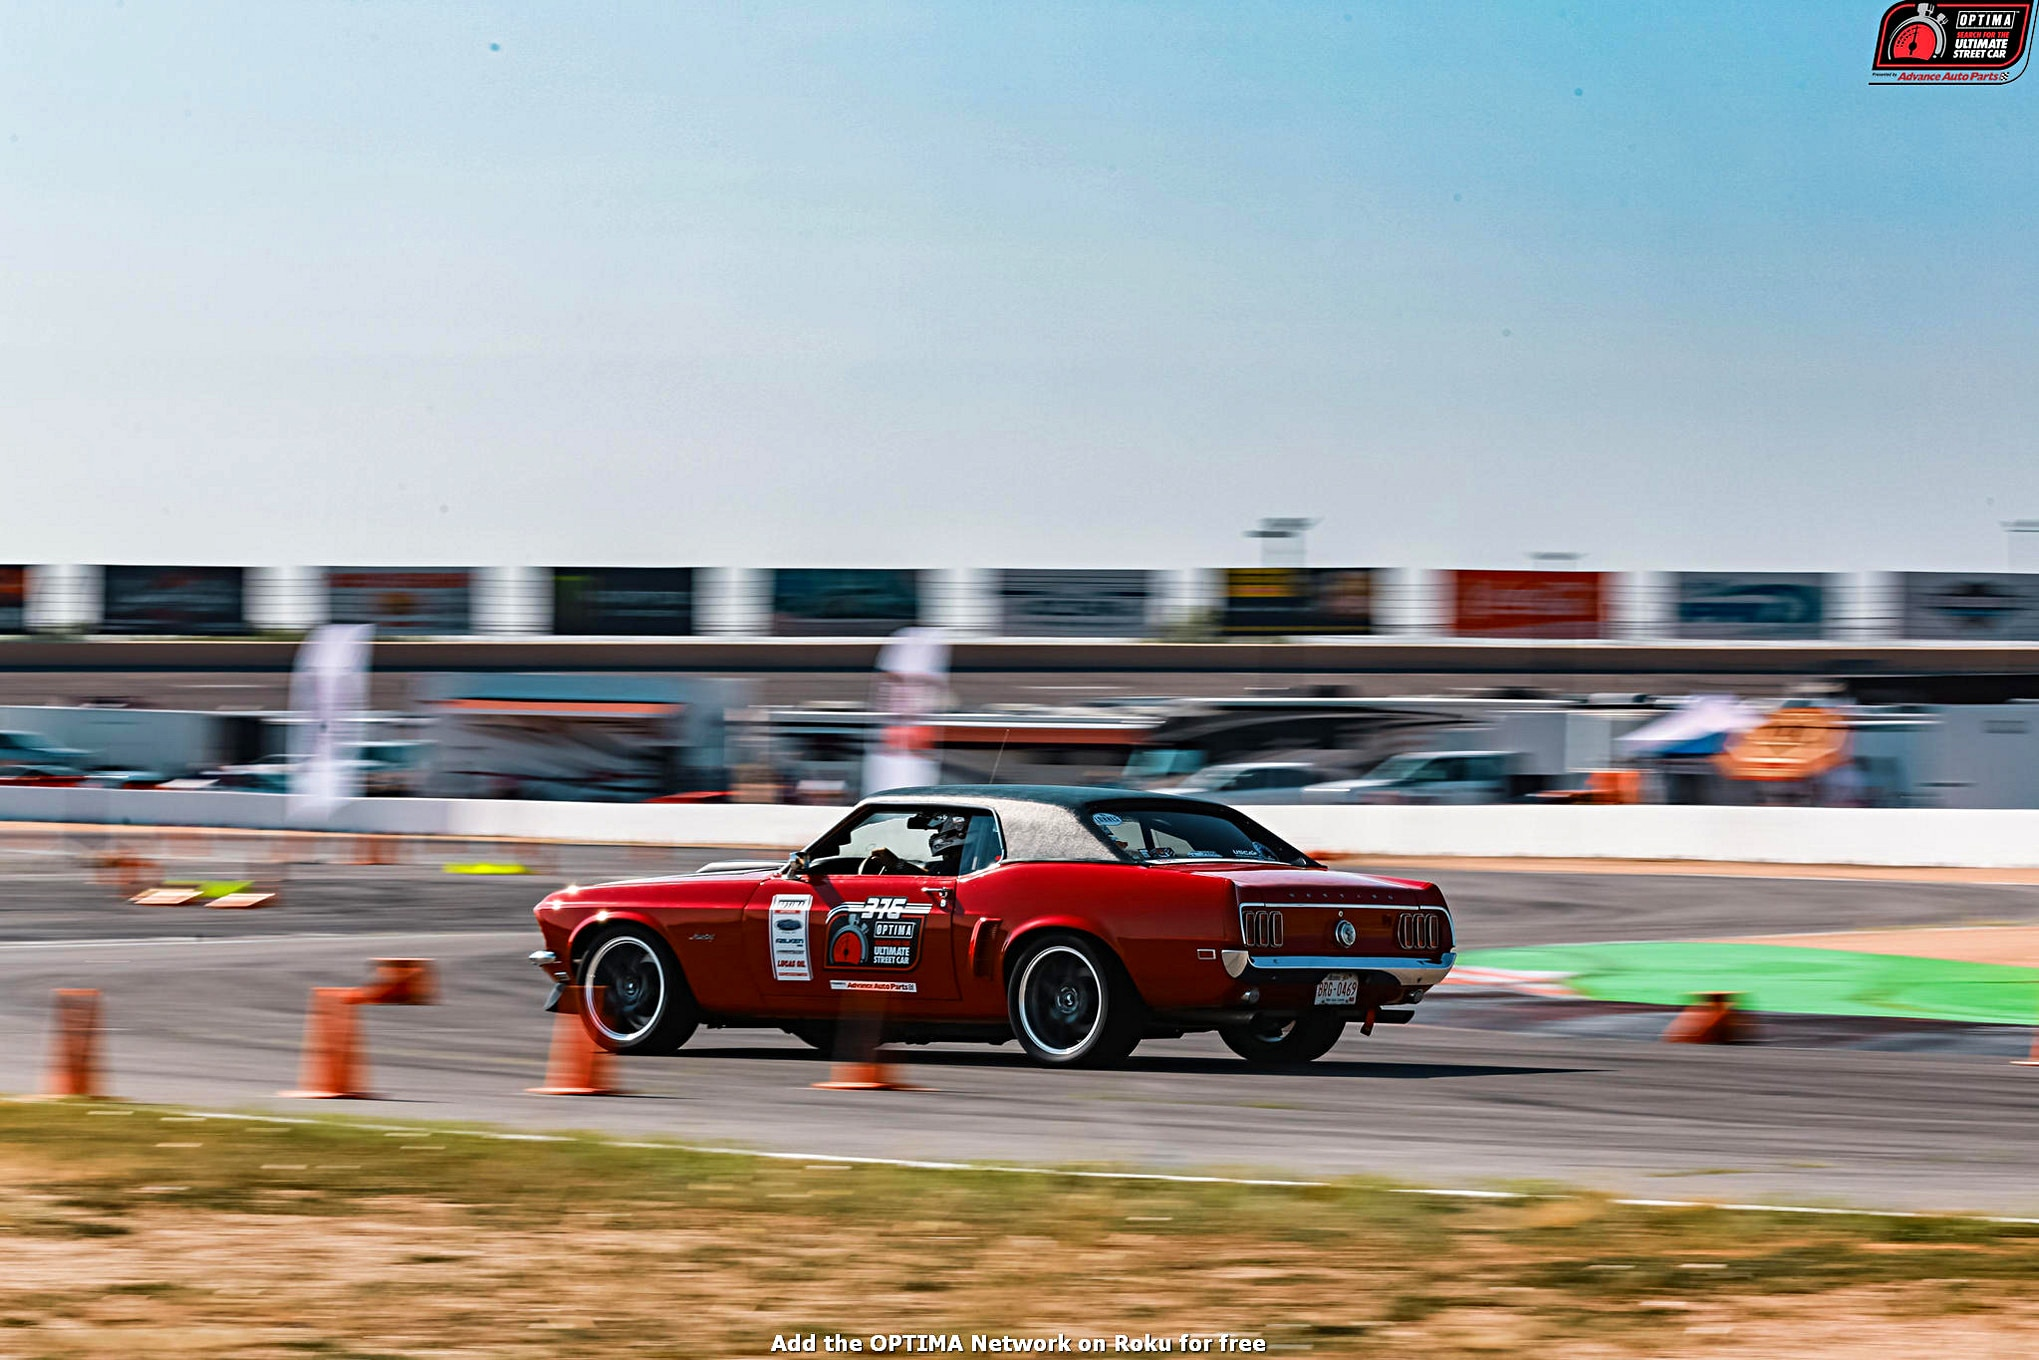 Bob Guido 1969 Ford Mustang DriveOPTIMA Pikes Peak International Raceway 2018 11